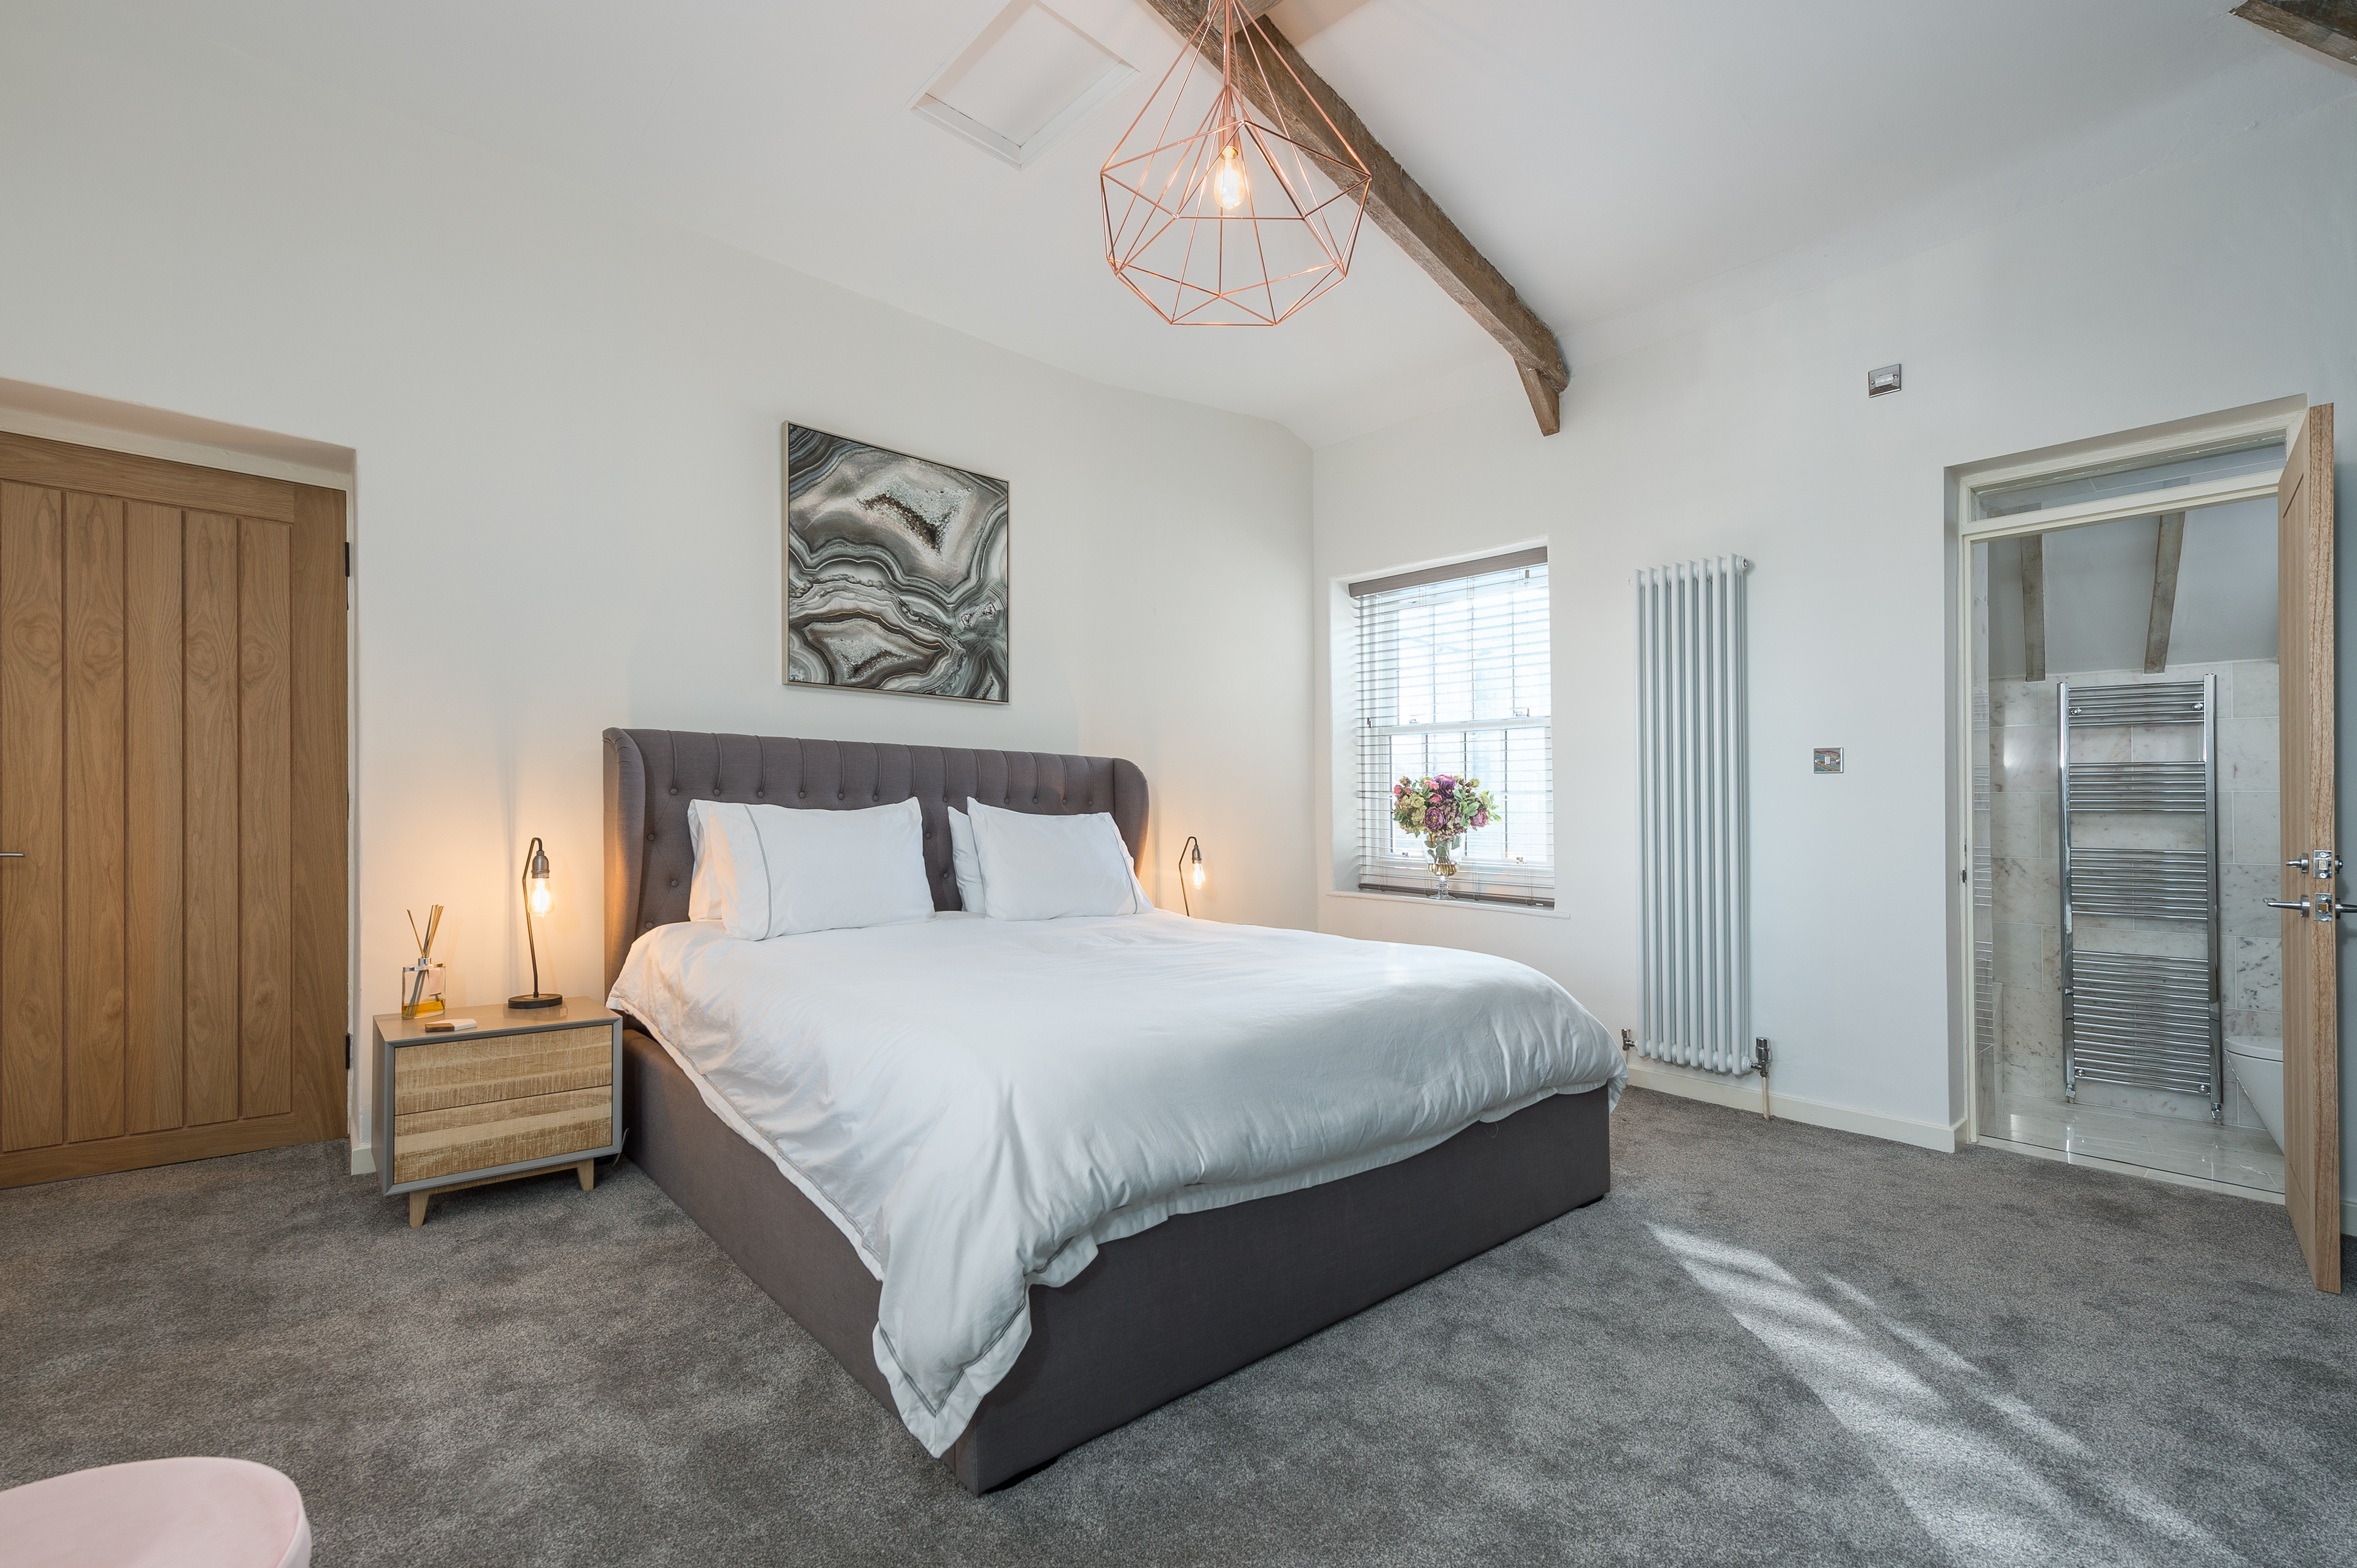 wagonway lodge gorgeous cottage in the heart of christmas for couple retreats luxury 5 star accomodation northumberland bamburgh warkworth